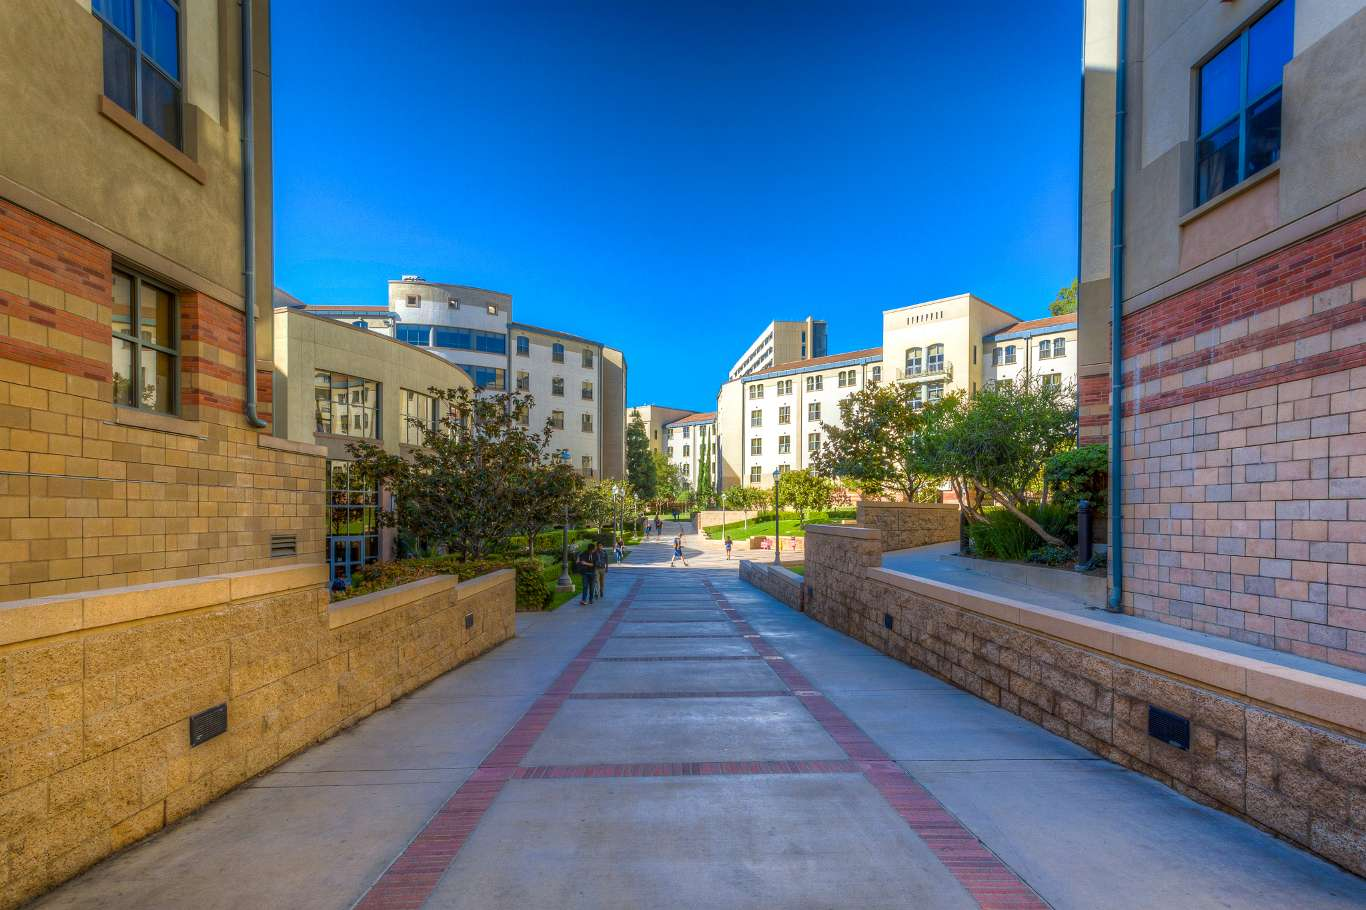 Experience UCLA - Housing in Virtual Reality. on kentucky freshman housing, emory freshman housing, columbia freshman housing, yale freshman housing, ucsb freshman housing, uc davis freshman housing, university of virginia freshman housing, penn freshman housing, uc irvine freshman housing, usf freshman housing, notre dame freshman housing, cornell university freshman housing, sfsu freshman housing, san jose state freshman housing, pepperdine freshman housing, princeton freshman housing, uc santa barbara freshman housing, harvard university freshman housing, uab freshman housing,